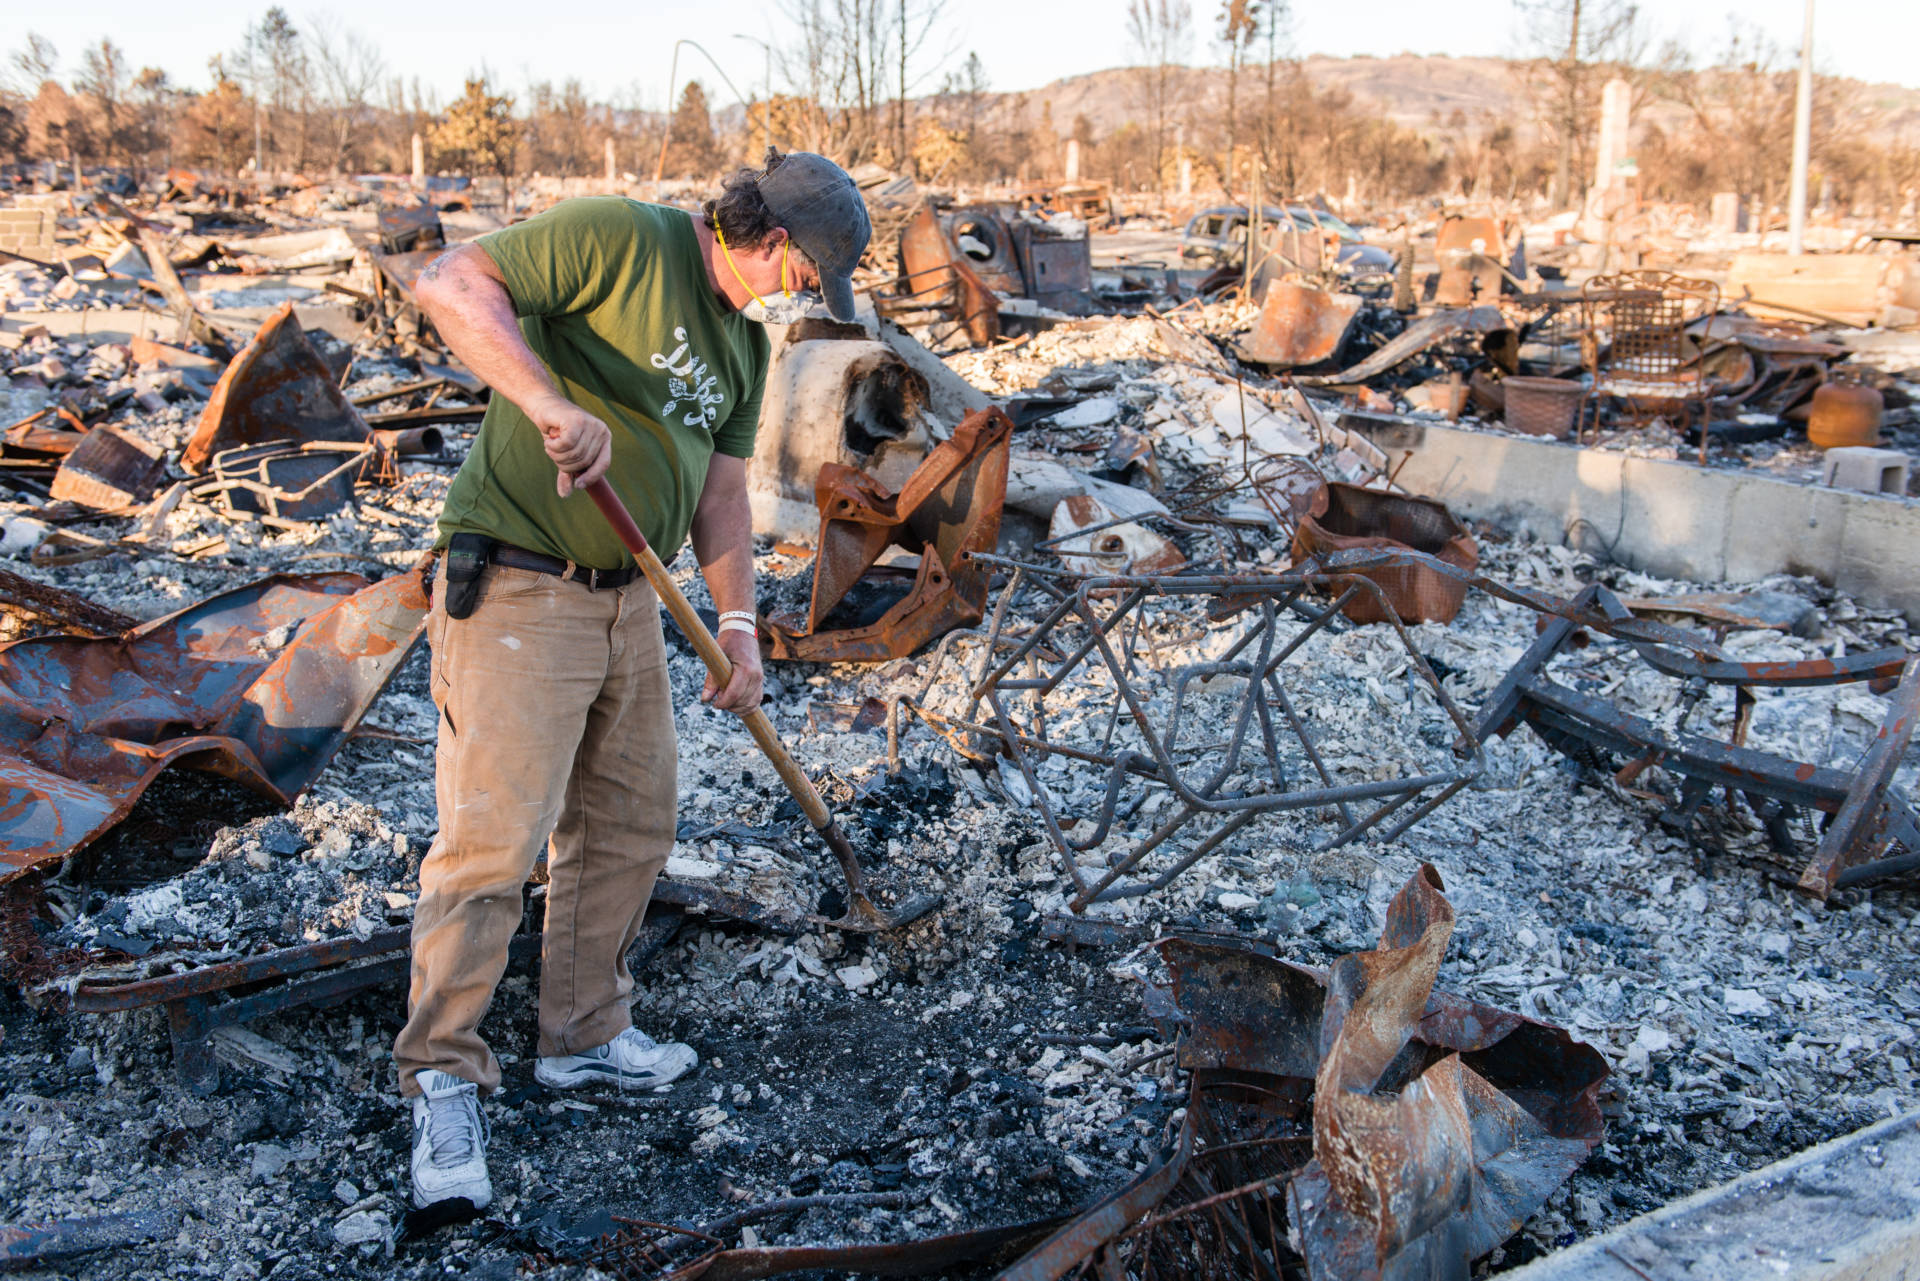 """Ed Corn wears a mask as he sifts through the ashes of the home he shared with his paraplegic roommate in Santa Rosa's Coffey Park neighborhood. """"I can definitely taste the toxins in my throat and the back of my tongue,"""" he said.   Heidi de Marco/KHN"""